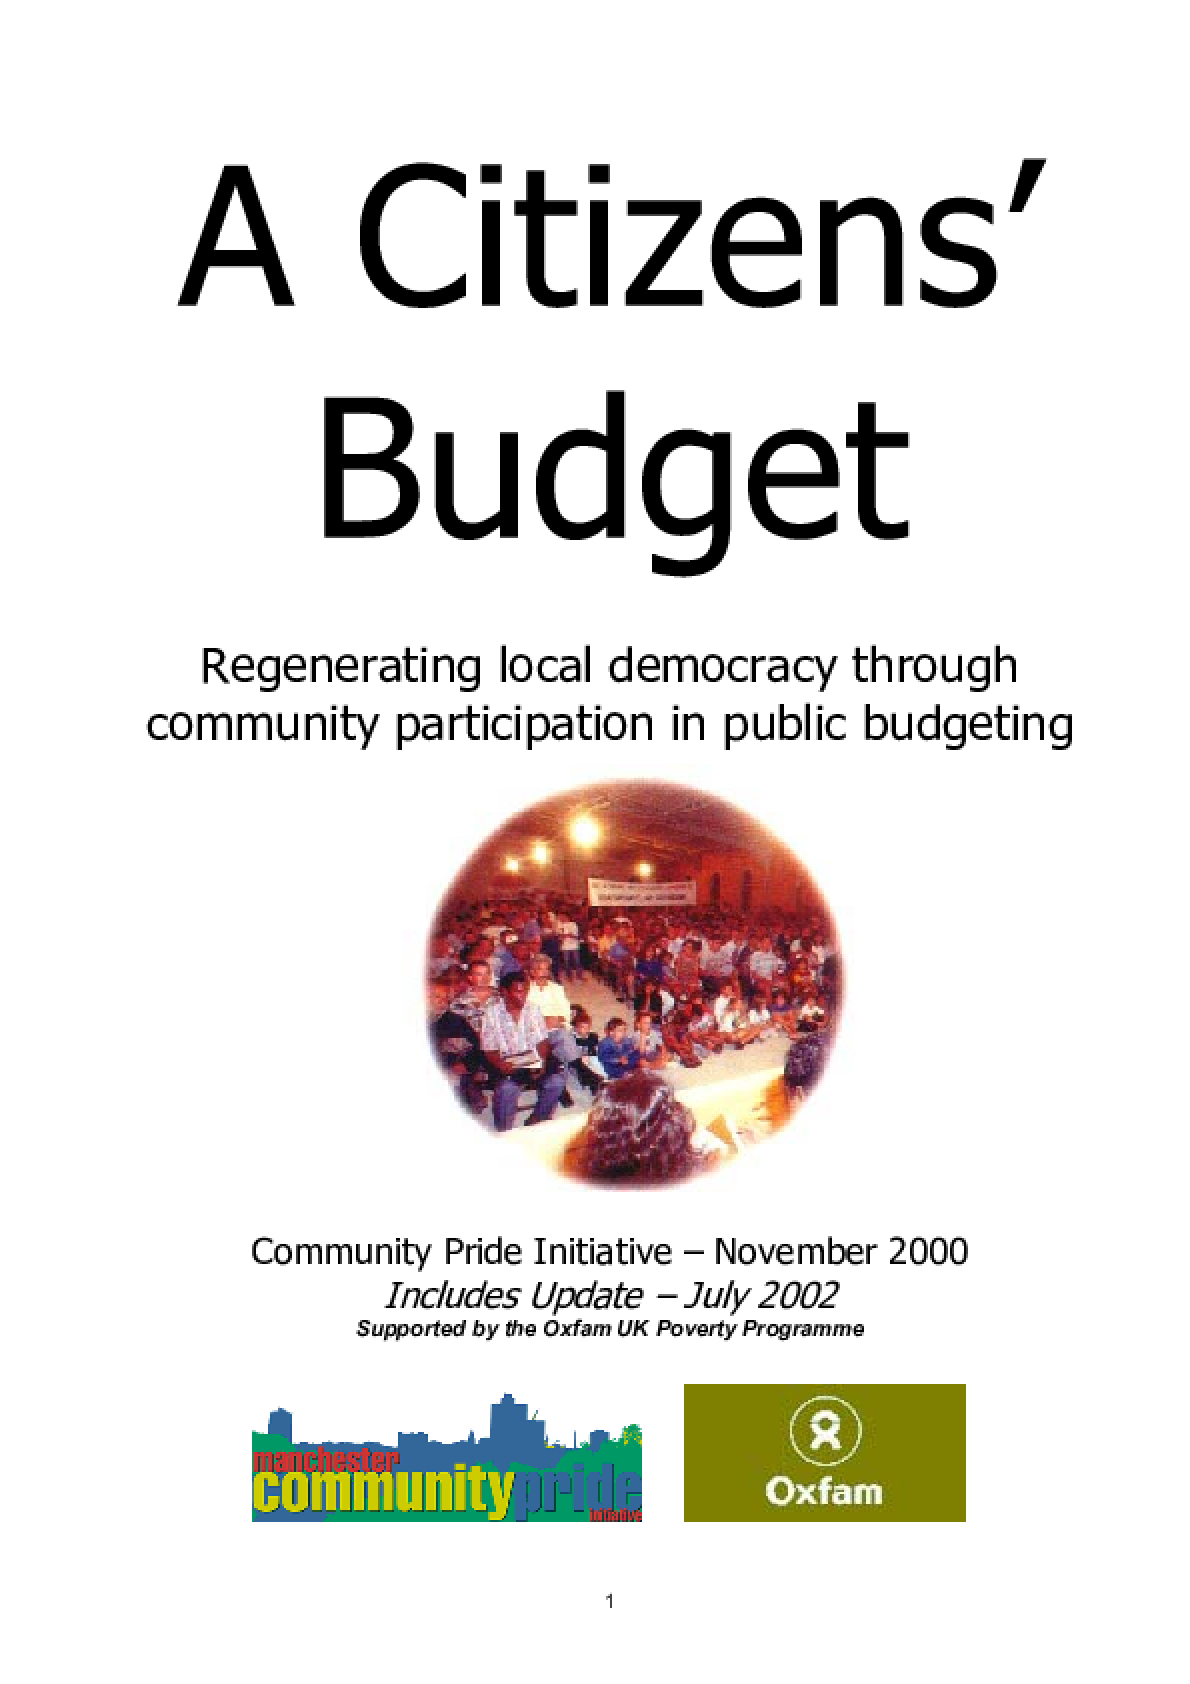 A Citizens' Budget: Regenerating local democracy through community participation in public budgeting